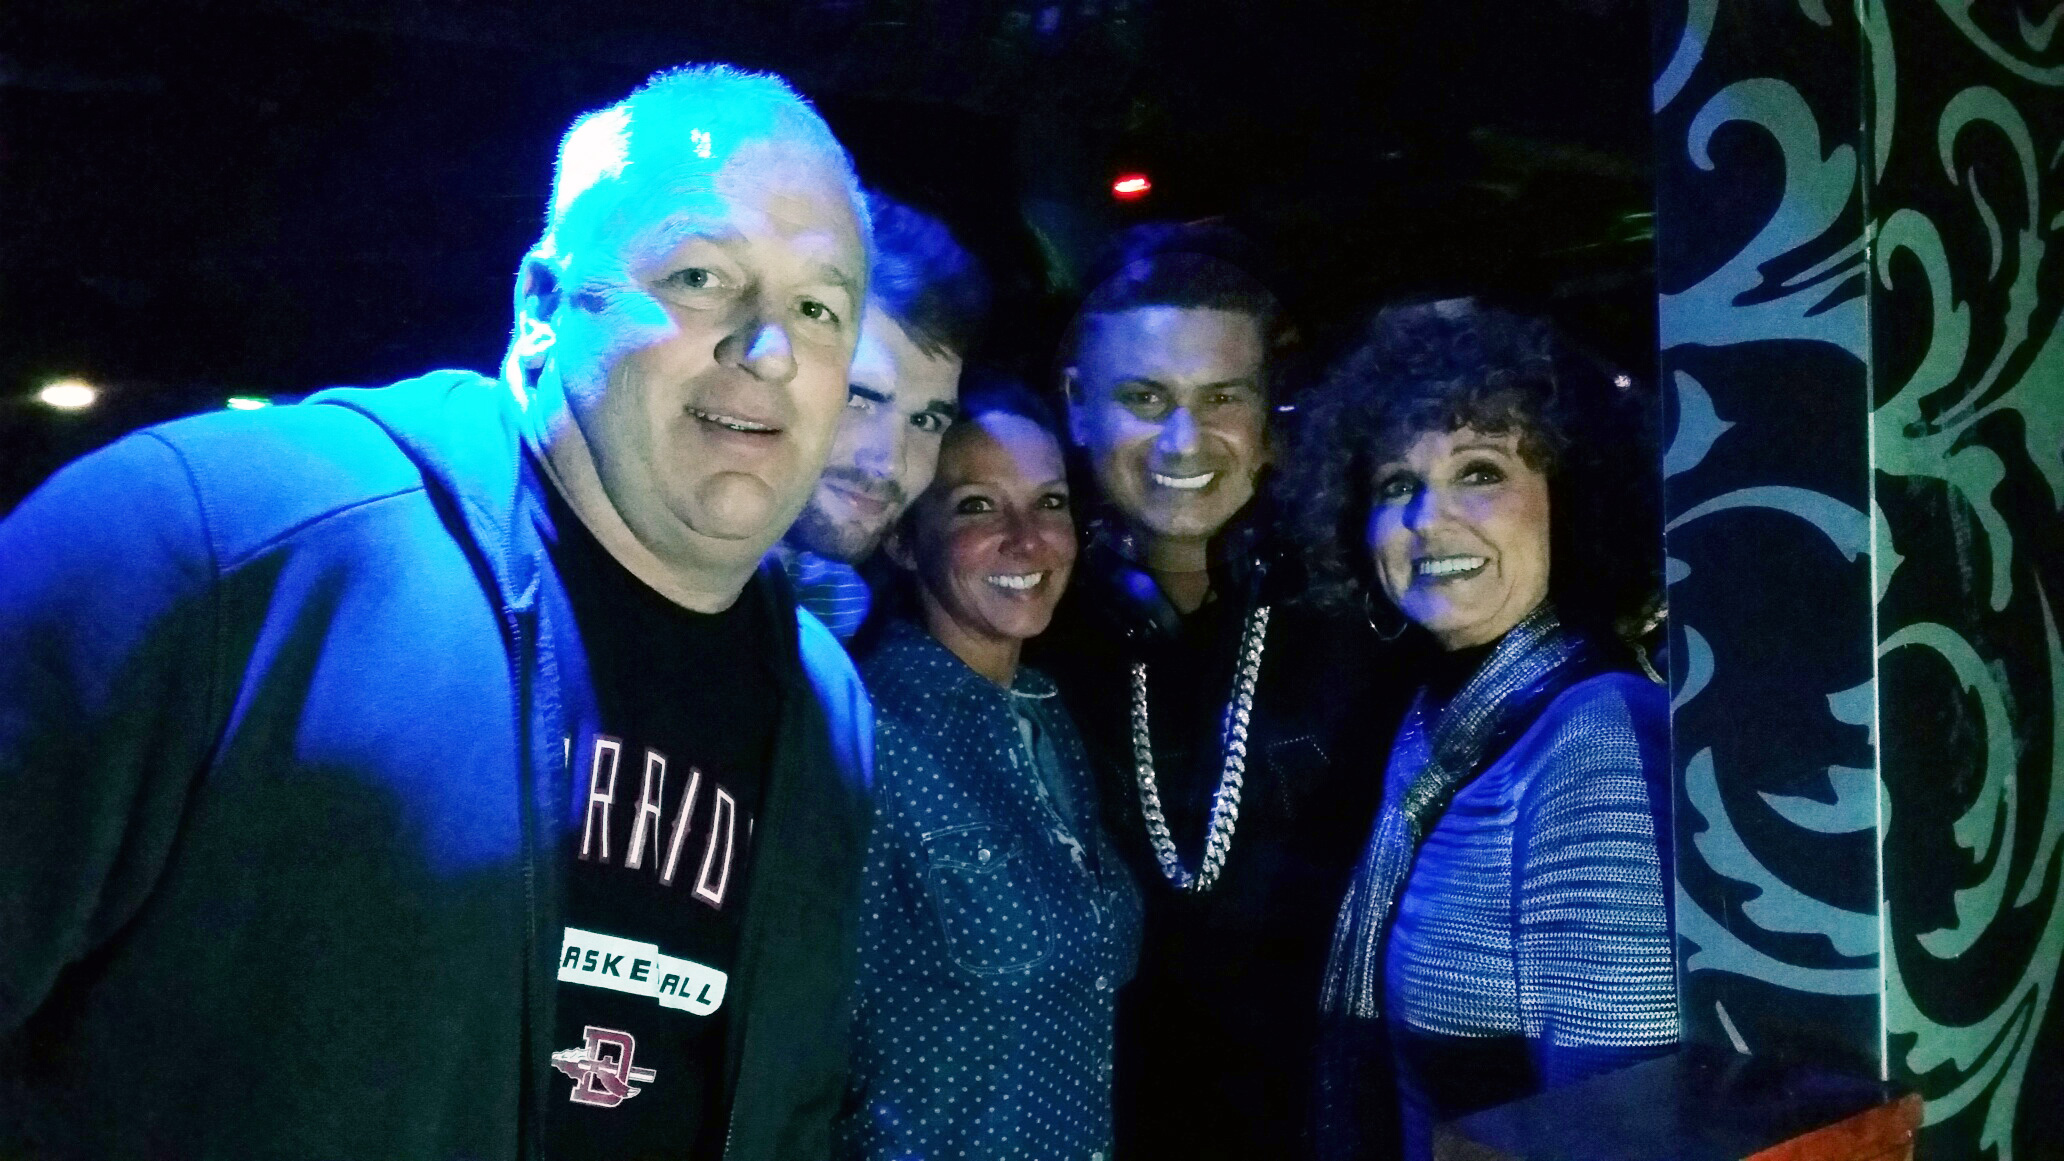 Left to Right: David, Michael, Andrea, Pauly D™, and Teri.